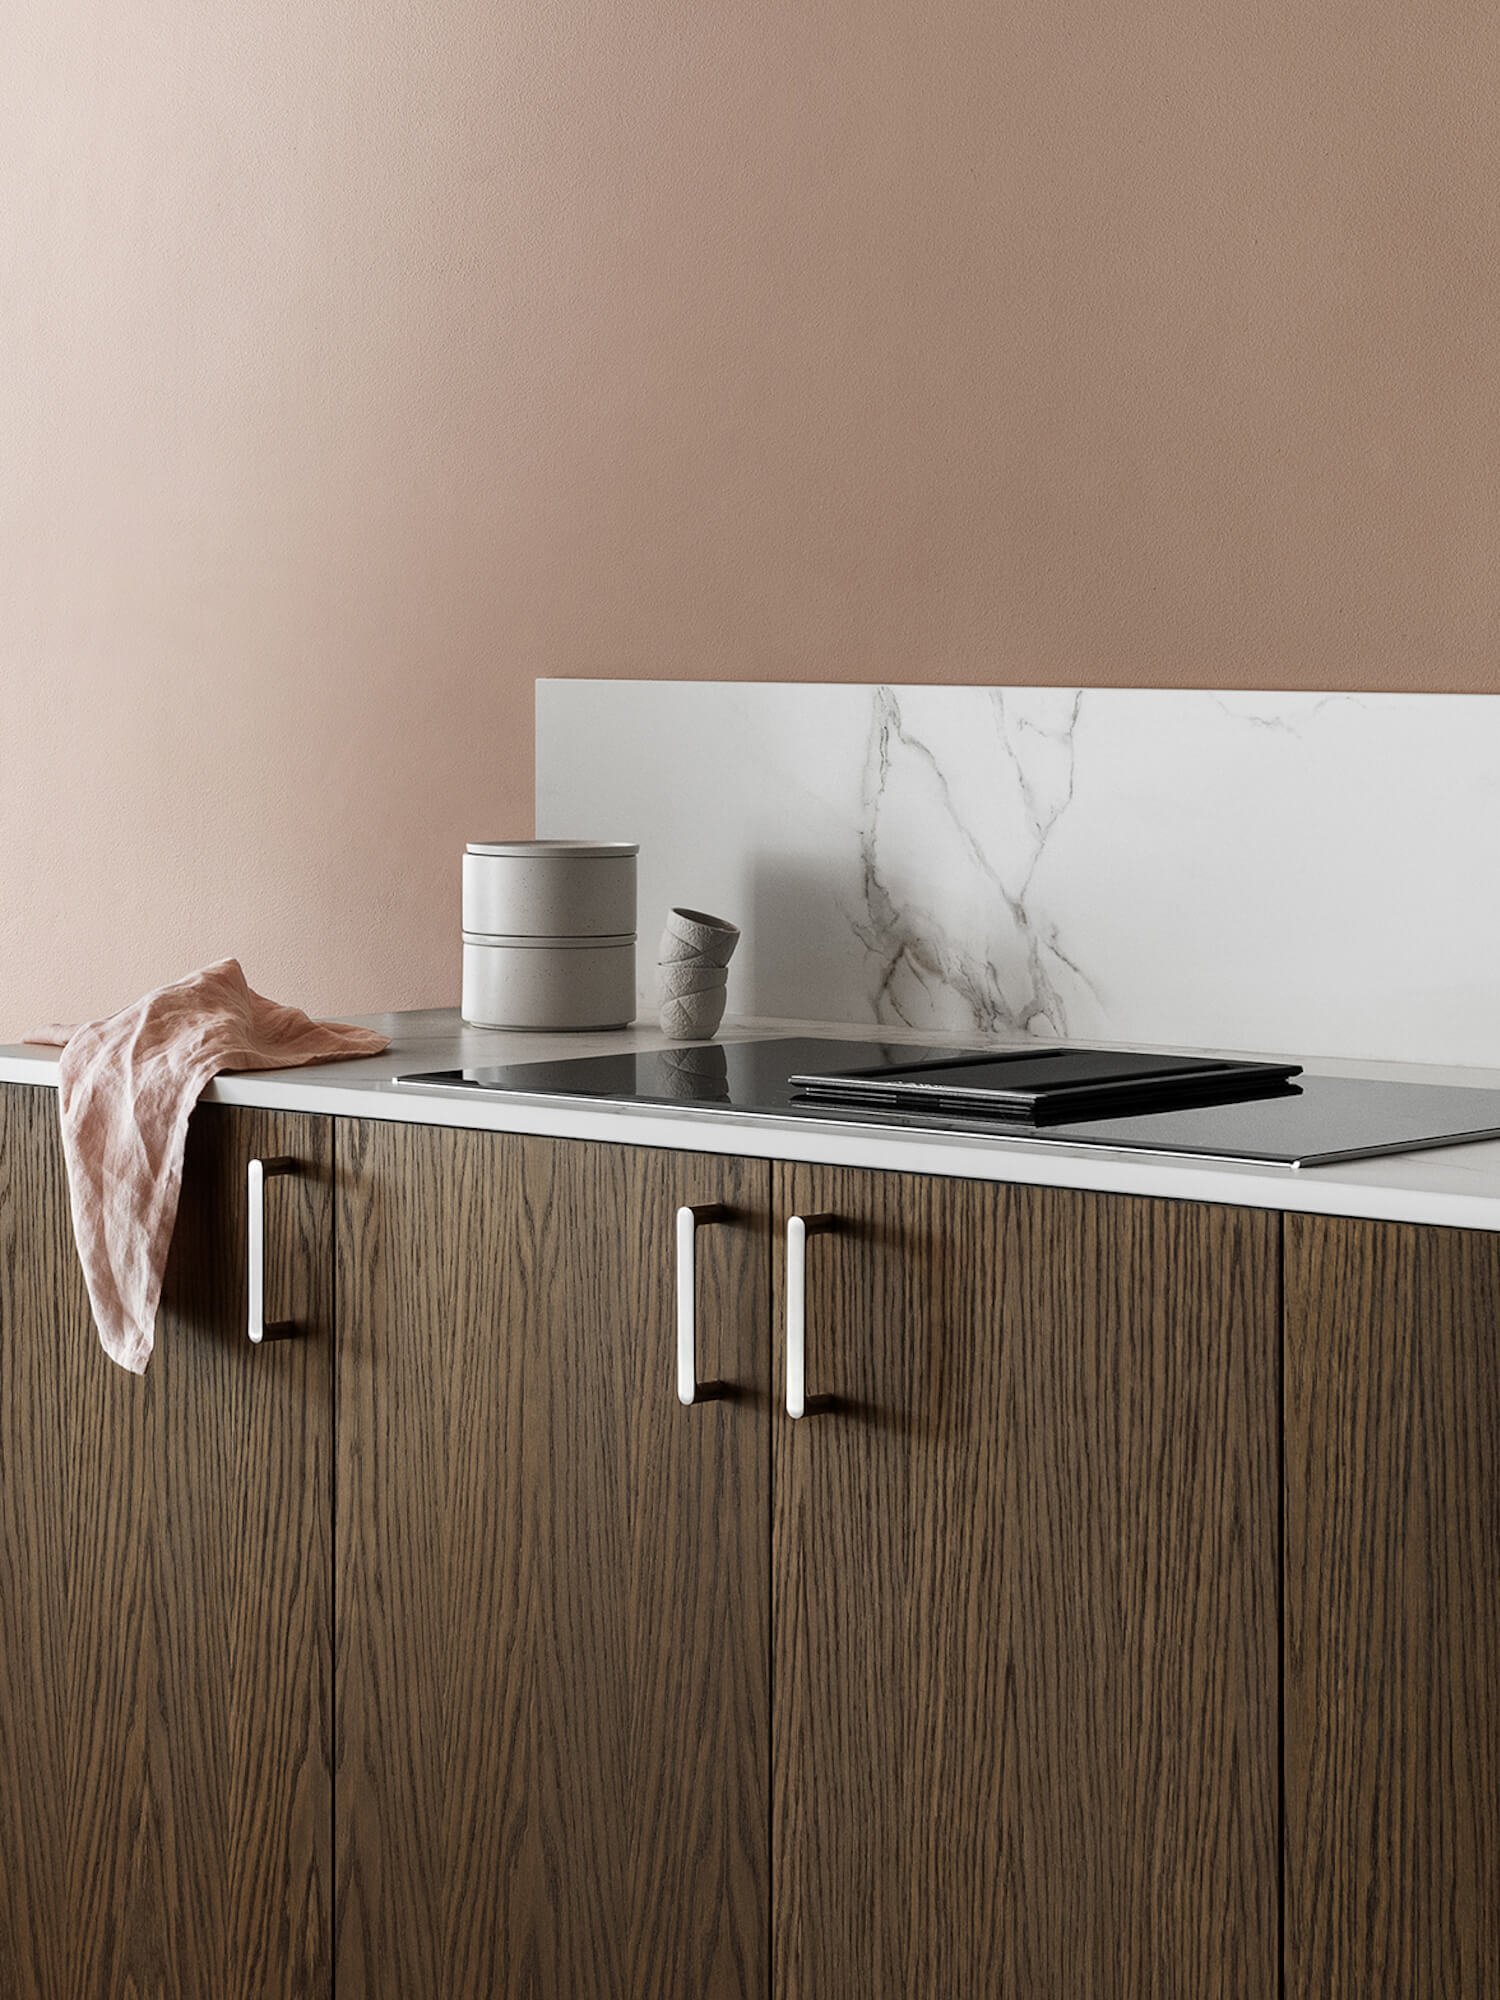 est living nordic style kitchen nordiska kok food pharmacy pink